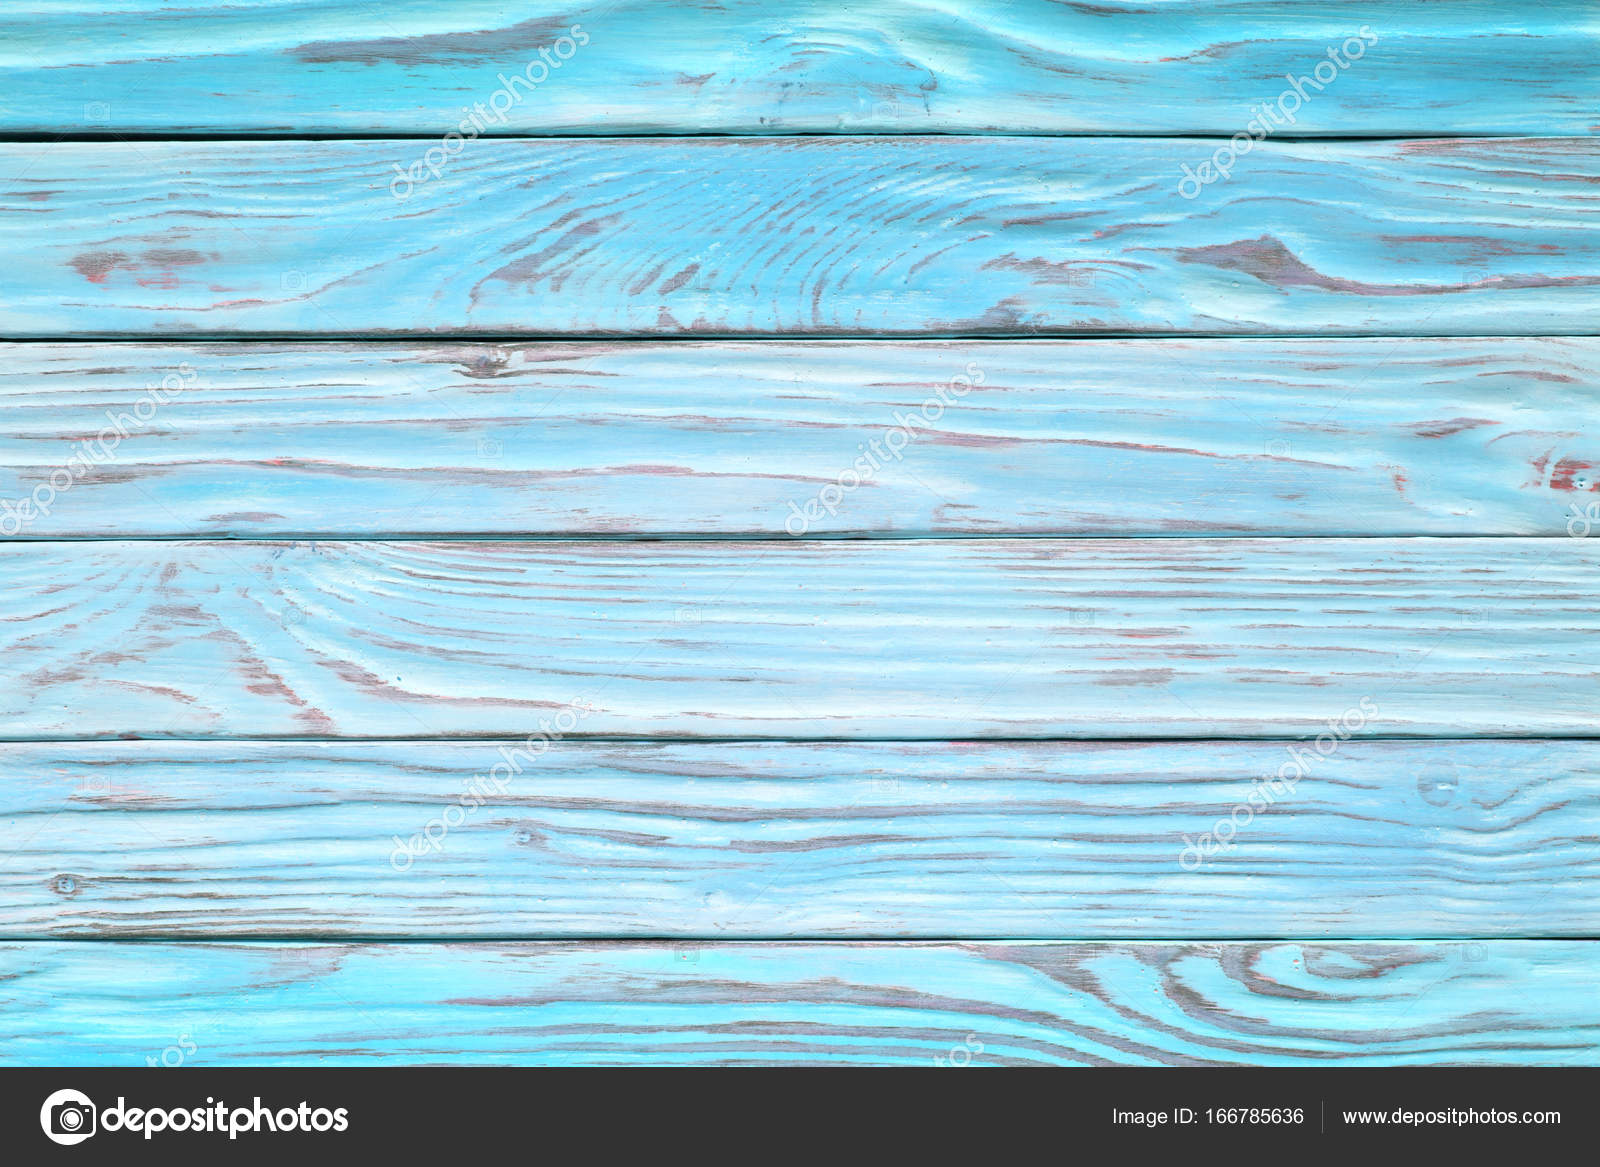 Aquamarine Wooden Planks Faded Wood Surface Rustic Blue Table W Stock Photo